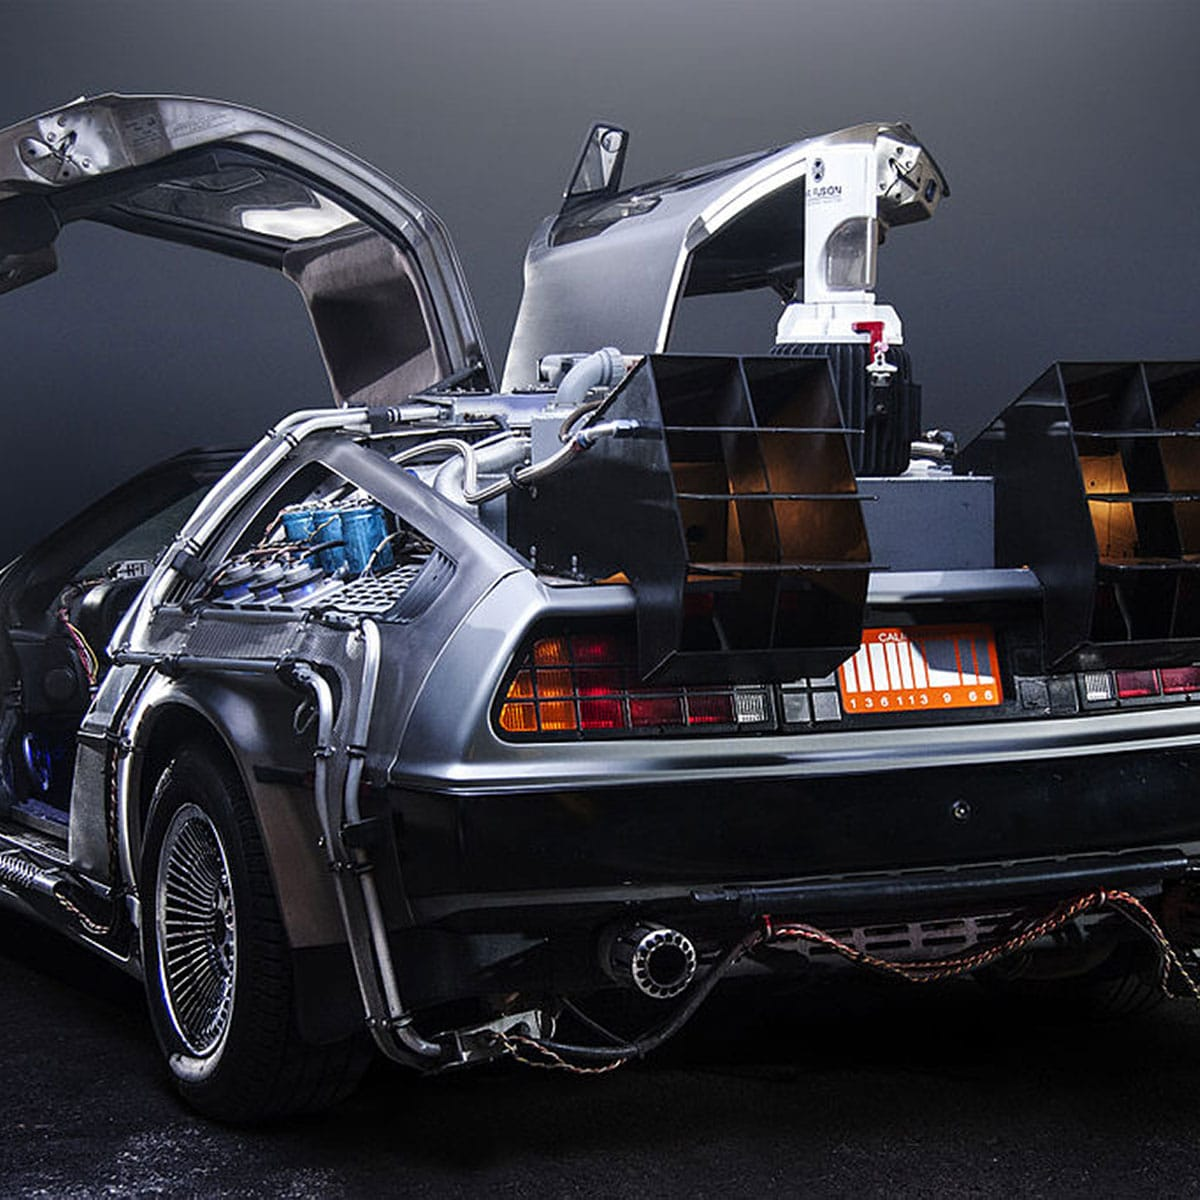 BACK TO THE FUTURE DAY - October 21, 2019